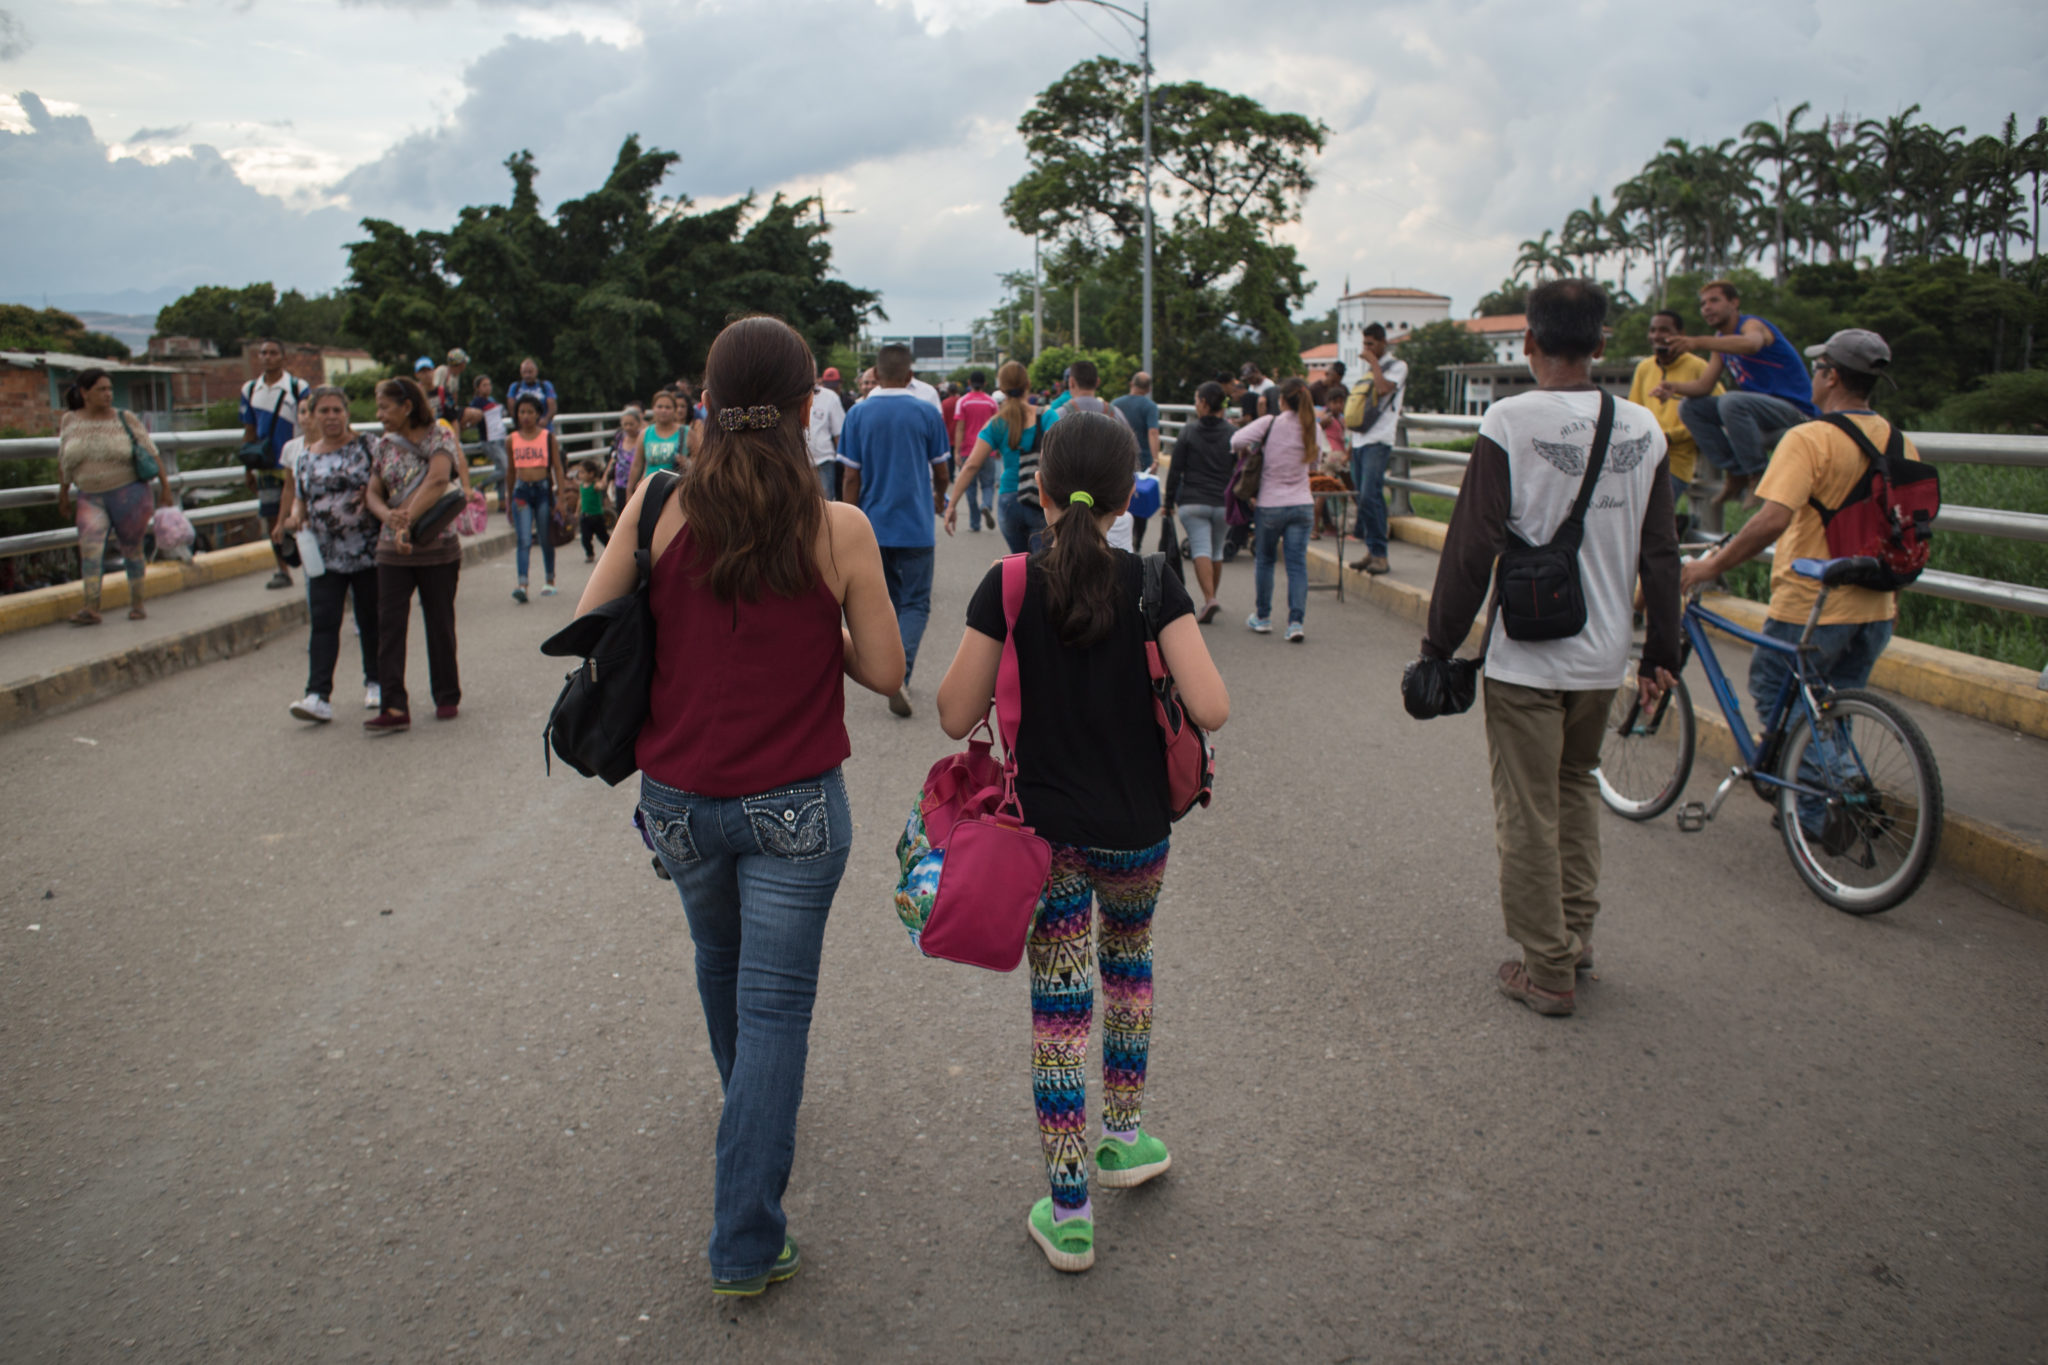 Venezuela: Regional governments must provide protection for people fleeing the country